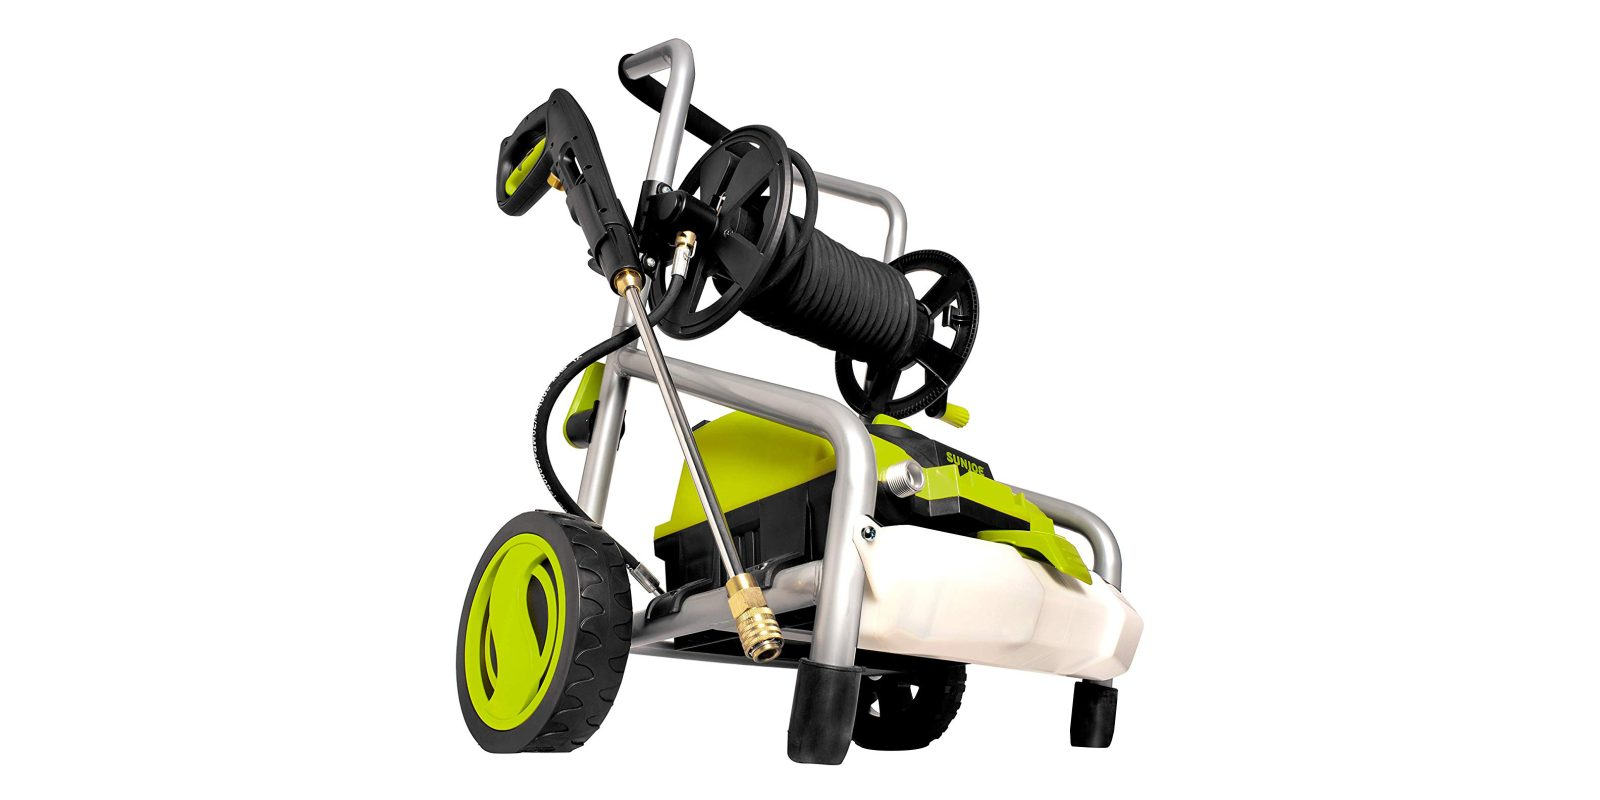 Add Sun Joe's 14A Electric Pressure Washer to your arsenal